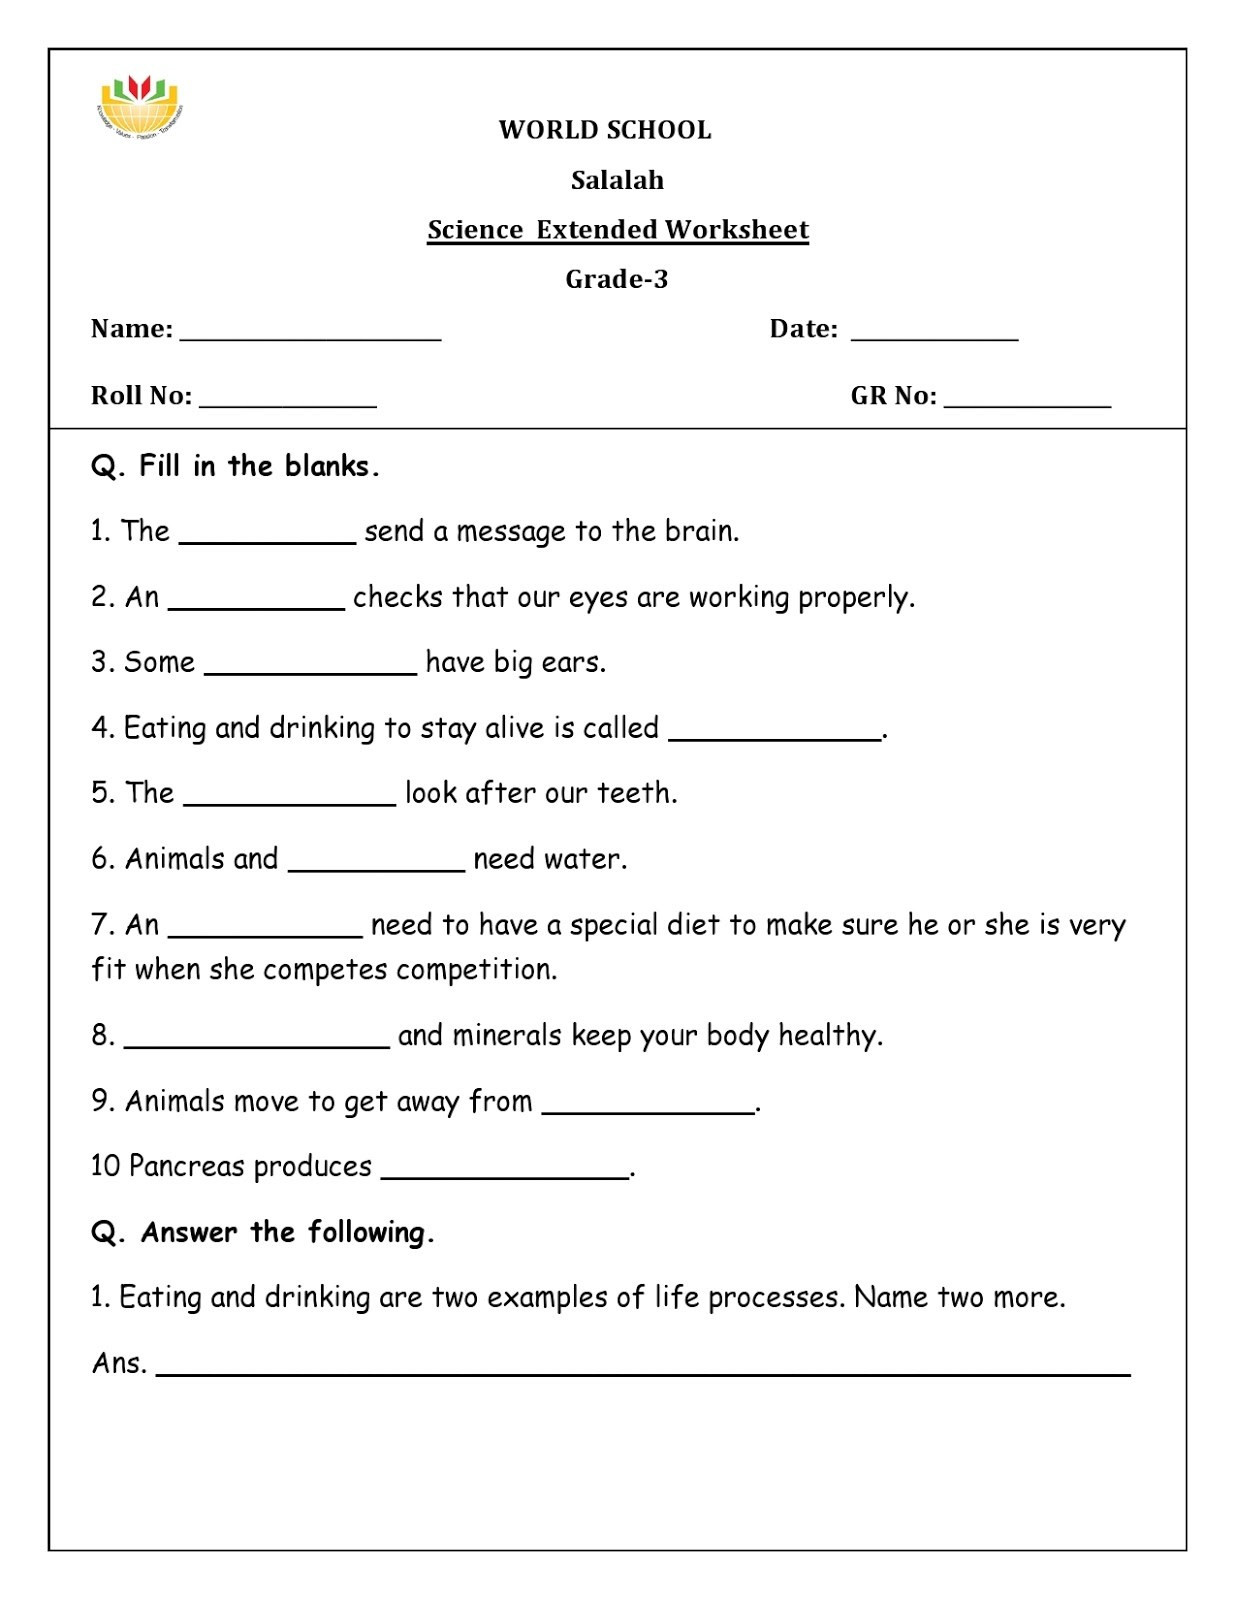 5th Grade Science Practice Worksheets Worksheet Science for Printable Worksheets and Grade to